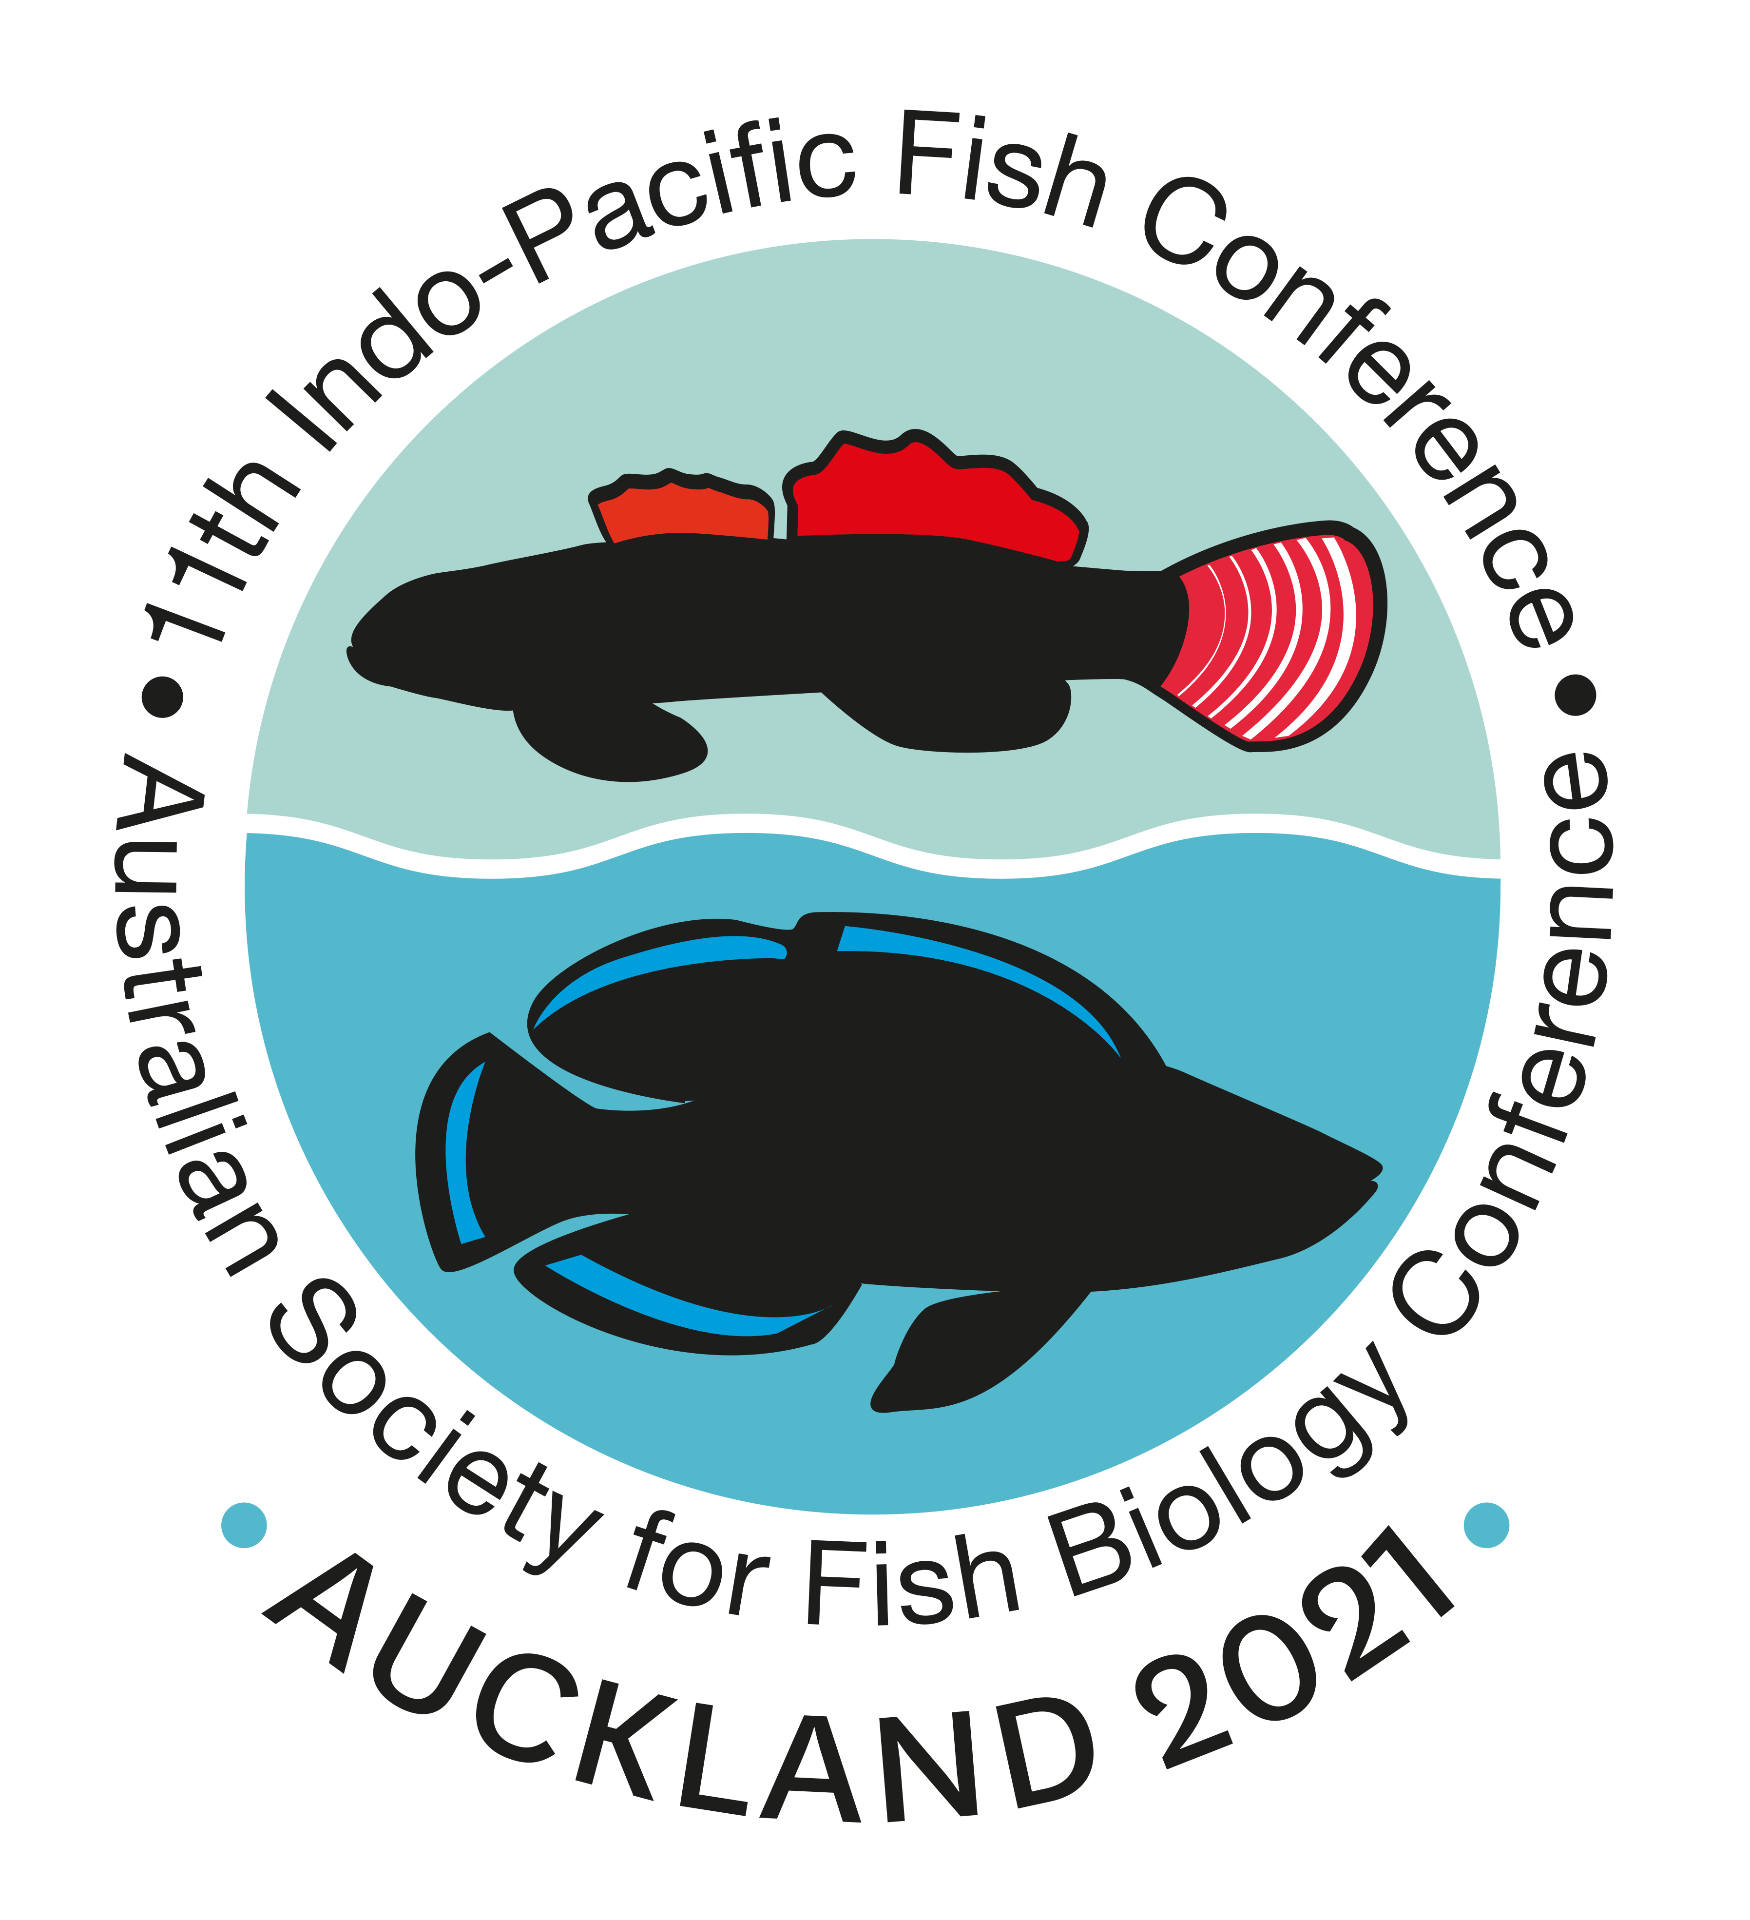 Indo-Pacific Fish Conference 2022